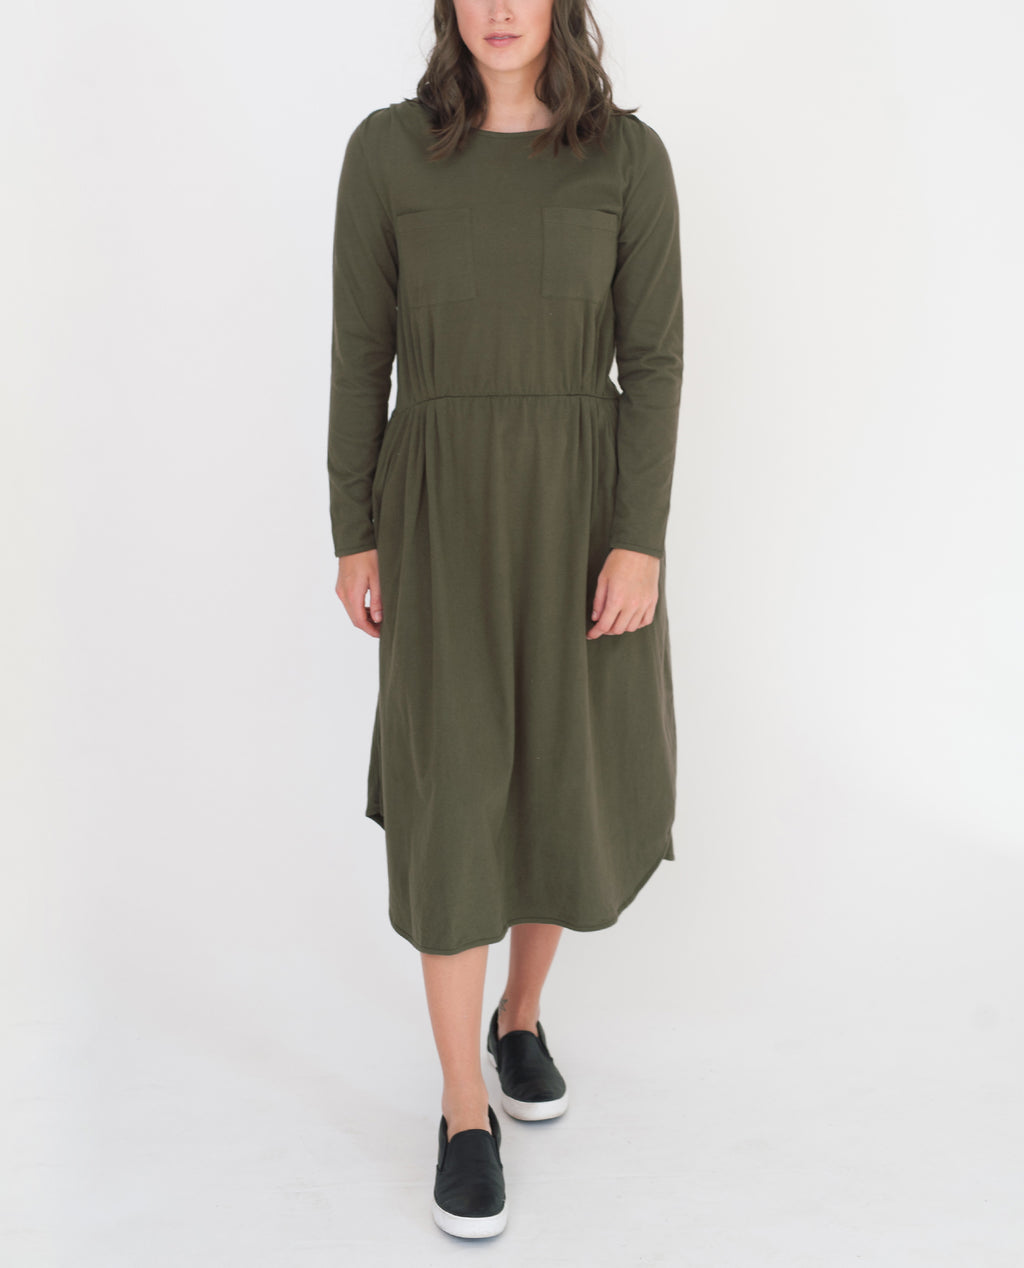 JENNA Organic Cotton Dress In Khaki